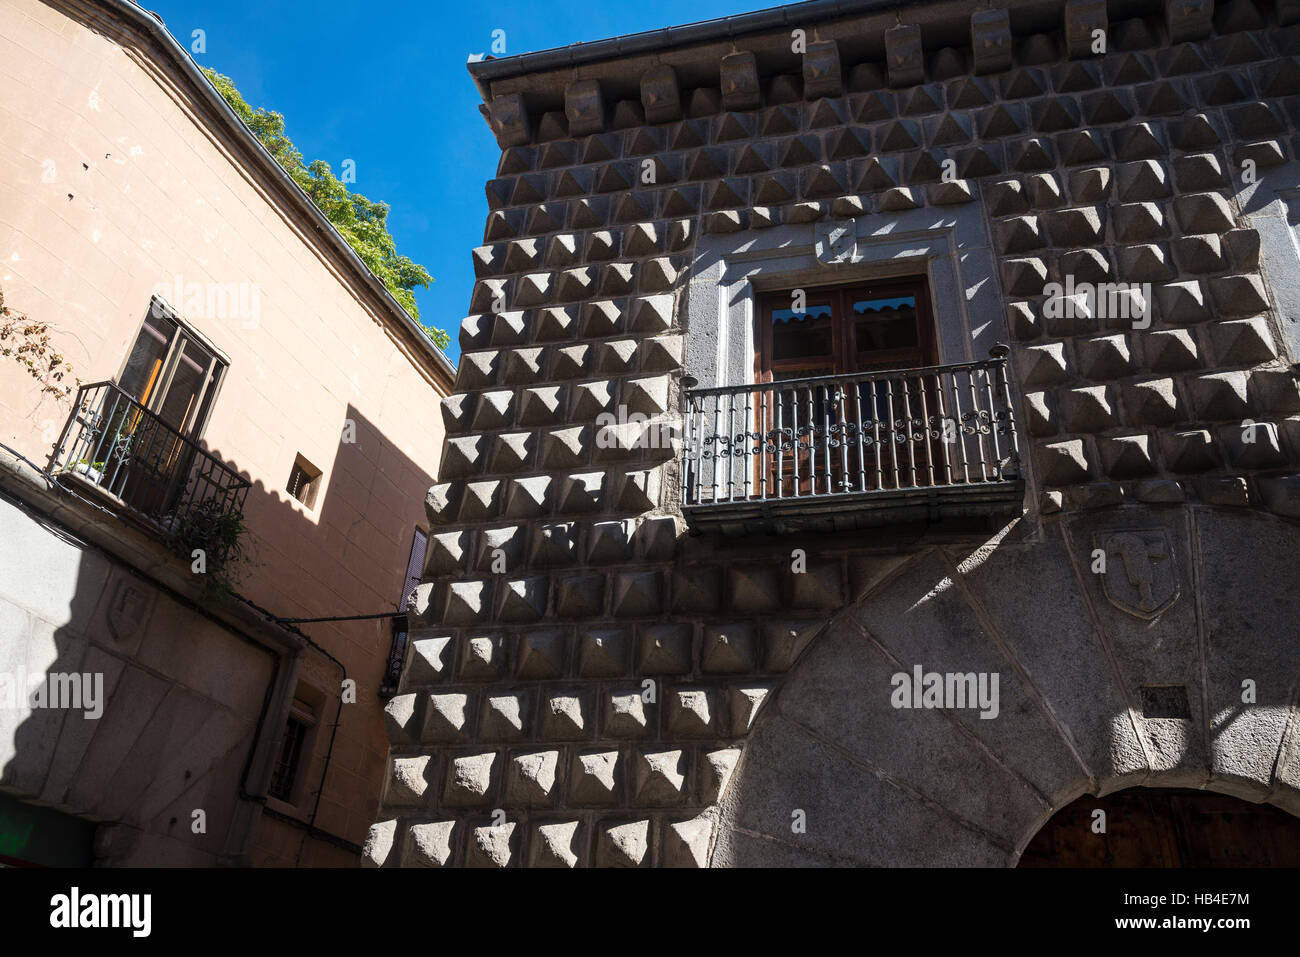 The 15th Cen. Casa De Los Picos in the city of Segovia, Spain - Stock Image